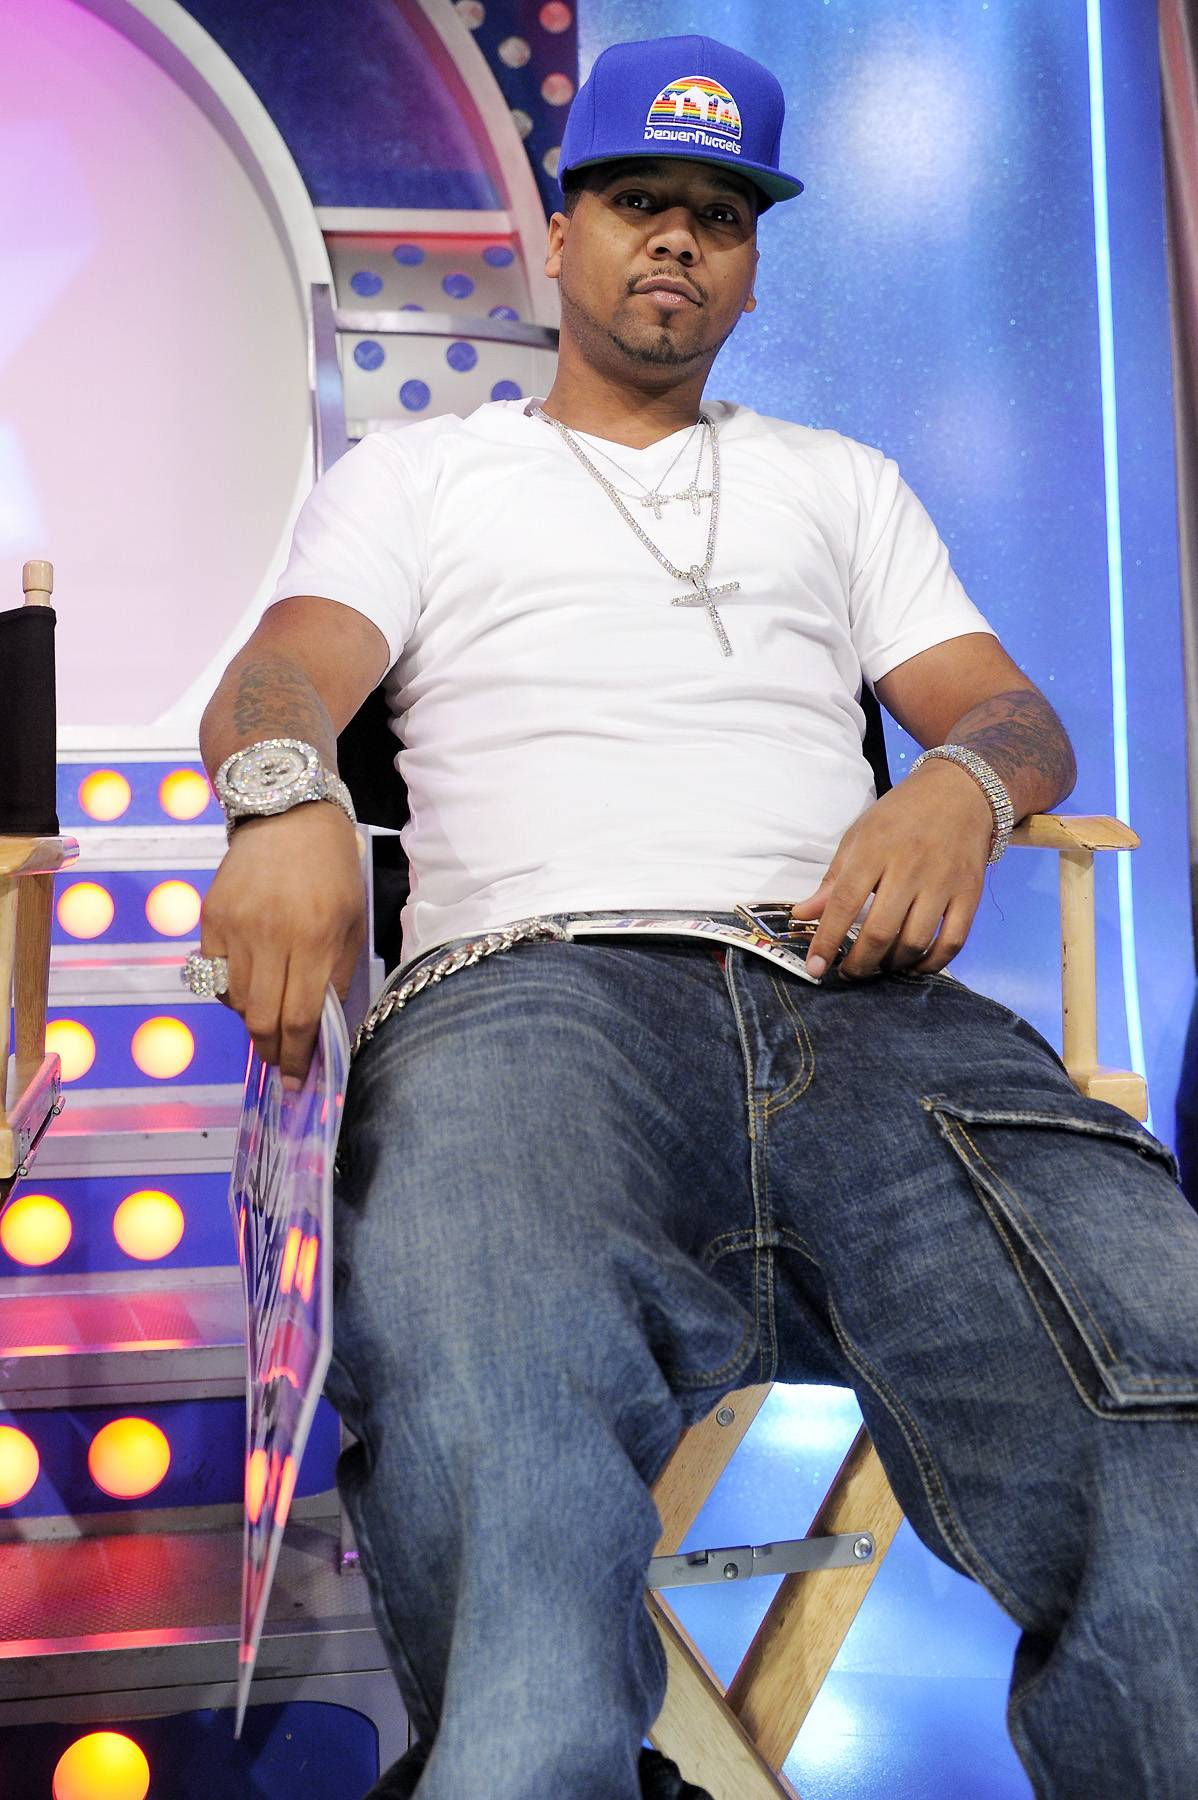 """Juelz Santana - Another former member of Dipset is Juelz Santana. The emcee is walking the solo artist line right now and just released a mixtape titled """"God Will'n."""" All reviews have been positive and his next album is definitely going to be a hot one.  (photo: John Ricard / BET)"""